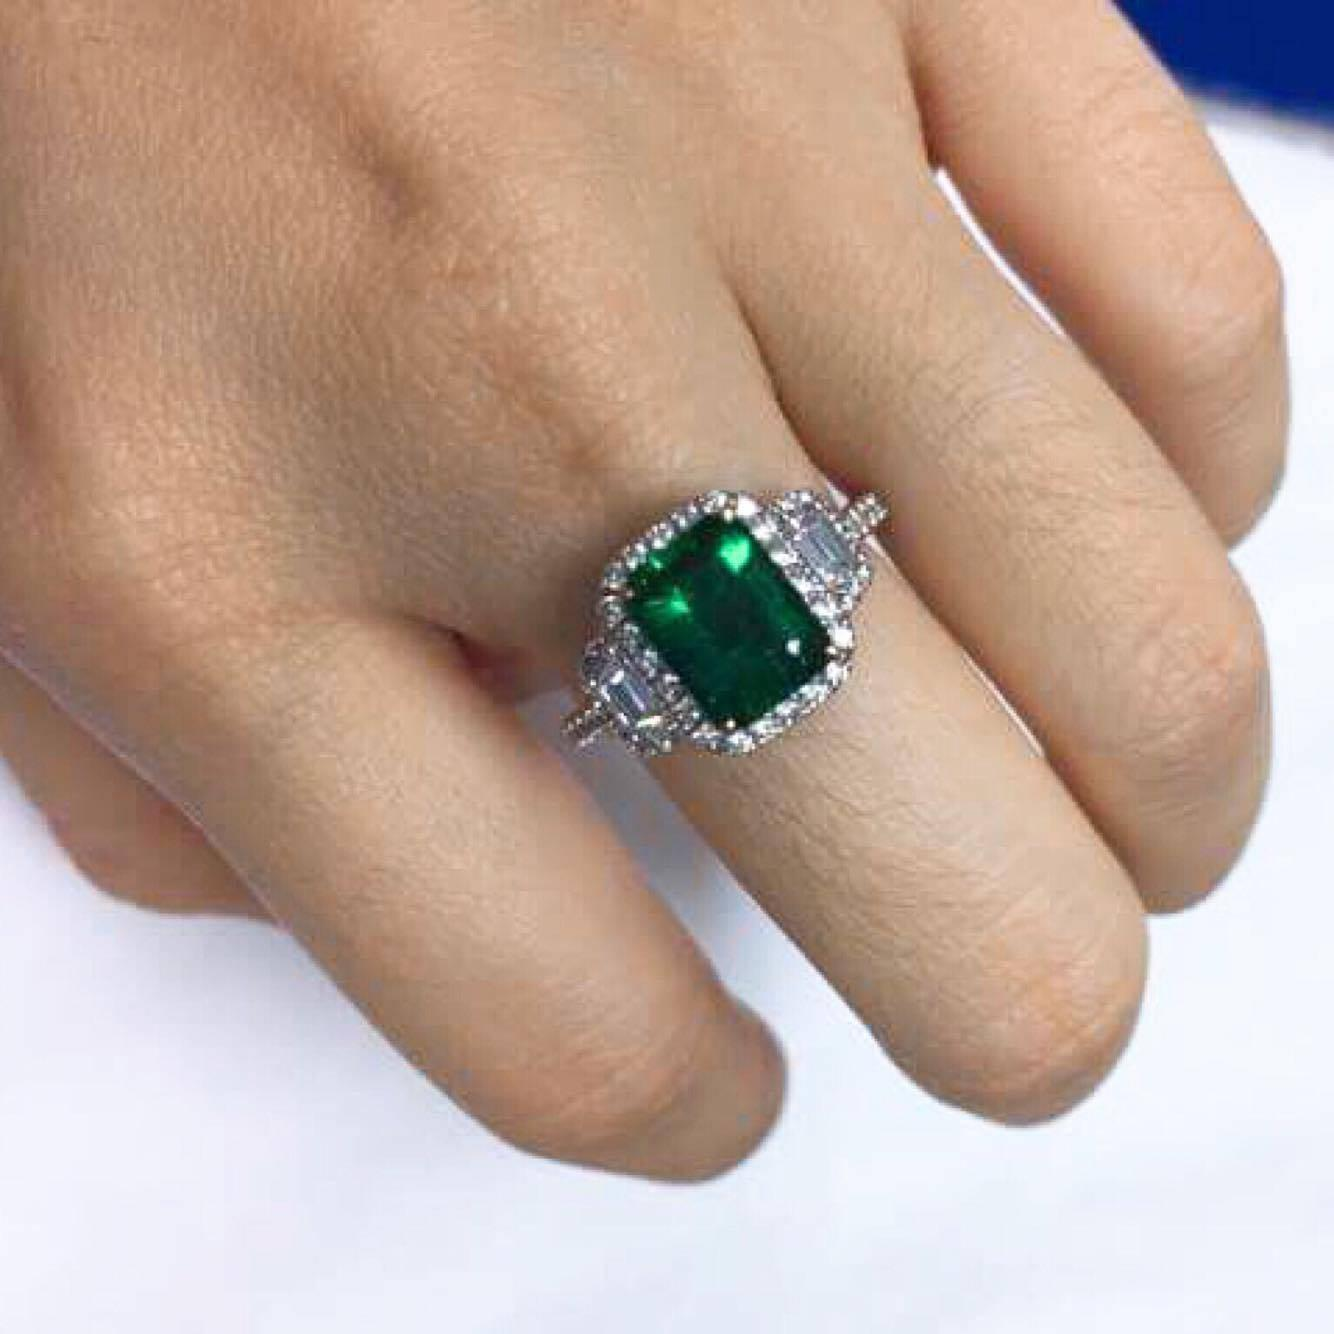 Green Emerald Engagement Rings Never